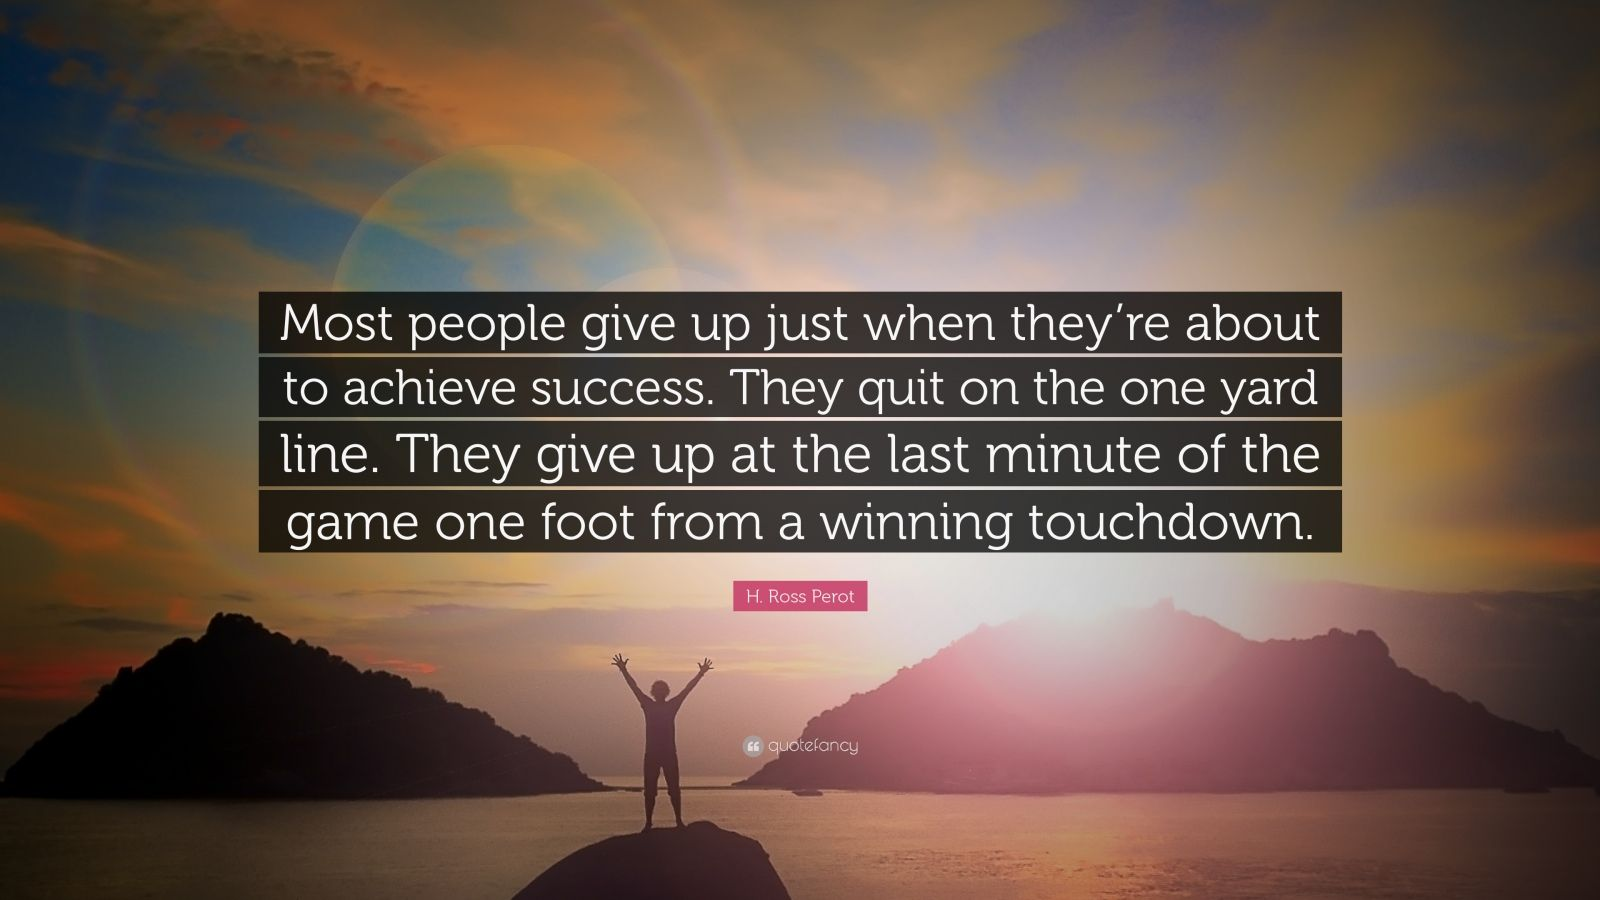 """H. Ross Perot Quote: """"Most people give up just when they're about to achieve success. They quit on the one yard line. They give up at the last minute of the game one foot from a winning touchdown."""""""